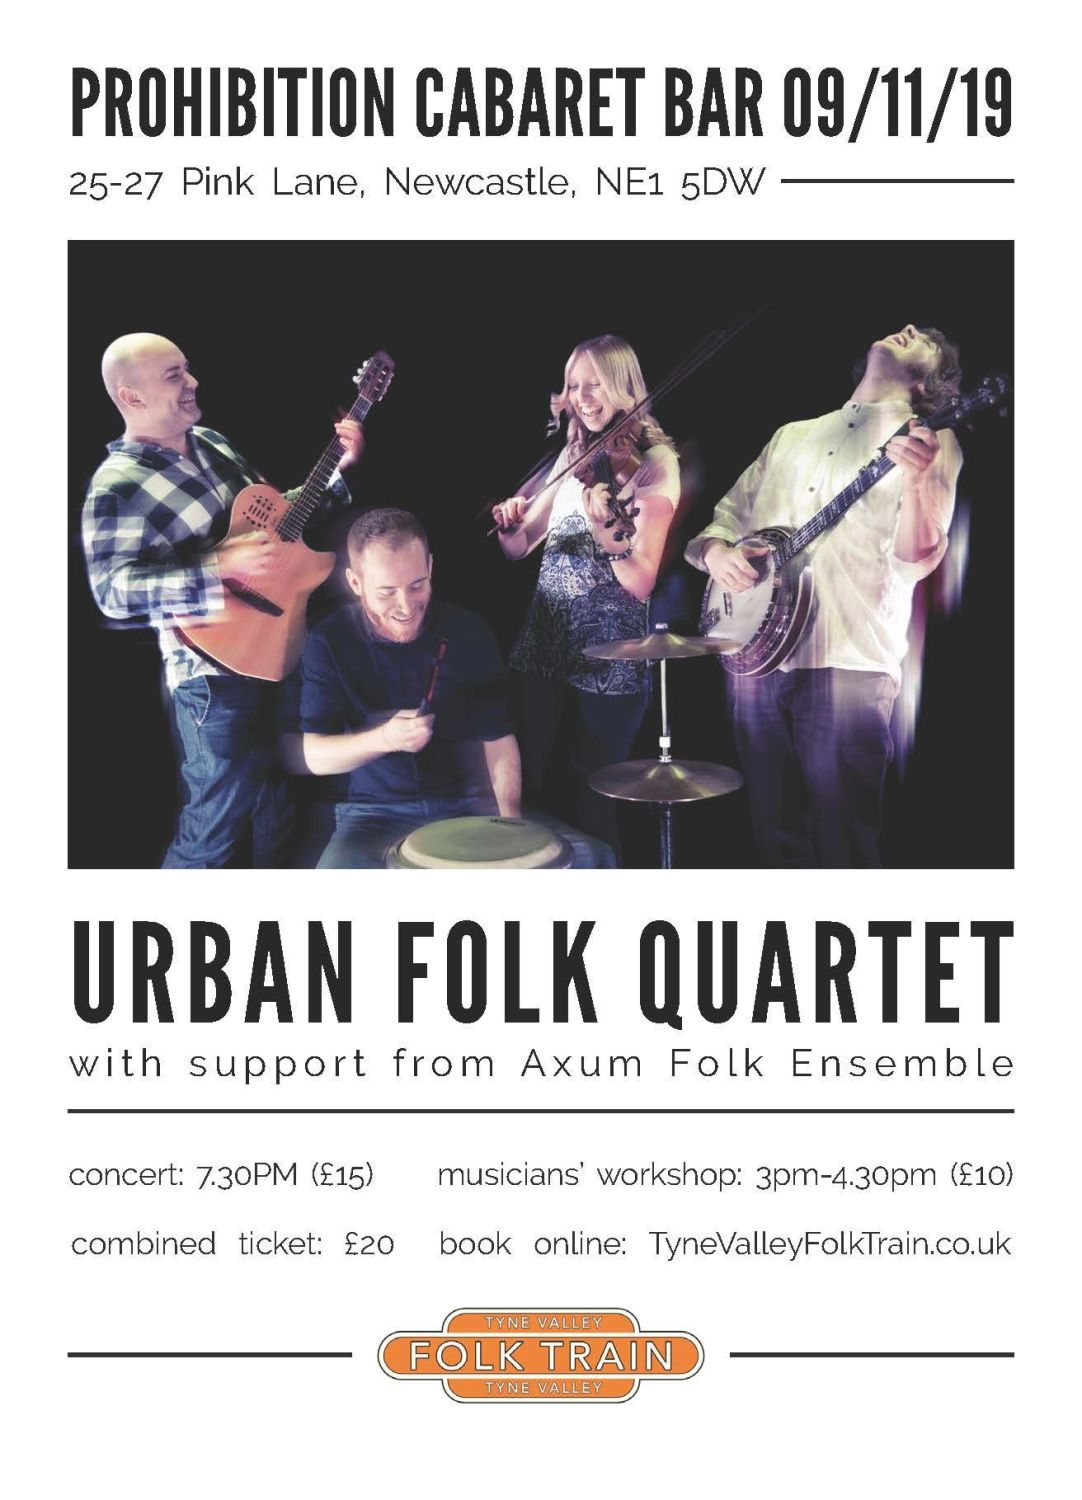 Urban Folk Quartet - Concert Ticket ONLY